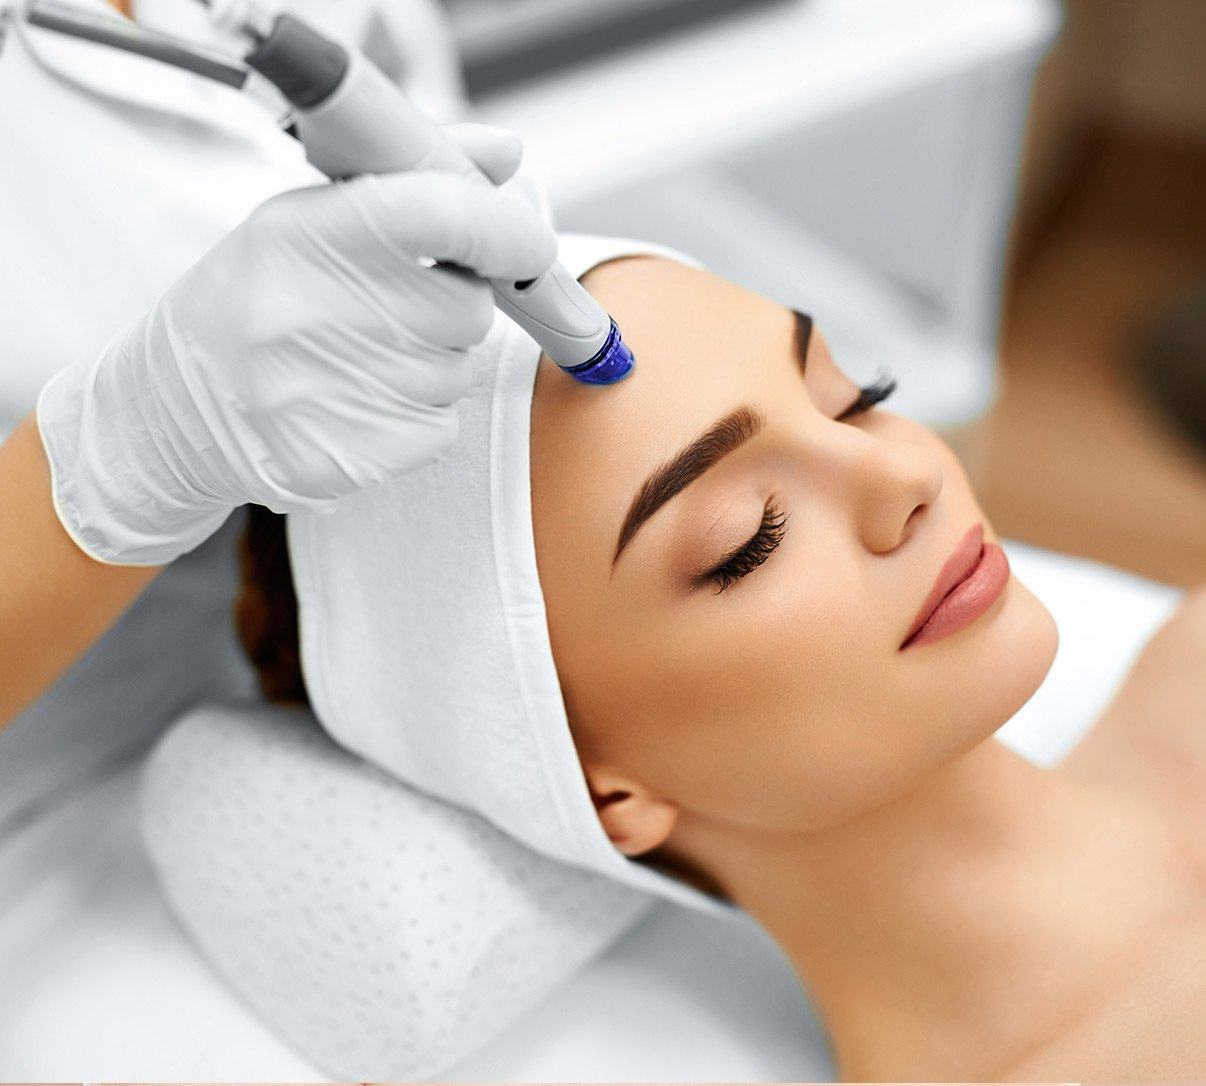 It's great for all ages and skin complexions | What You Need to Know About Hydrafacial Treatments | Her Beauty